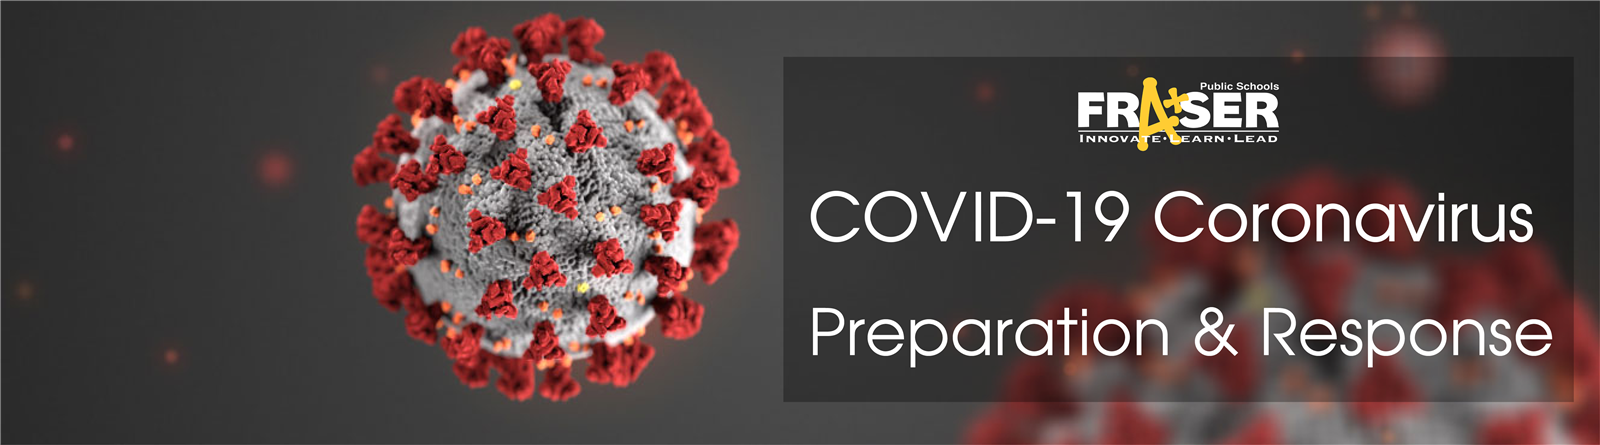 COVID 19 preparation and response